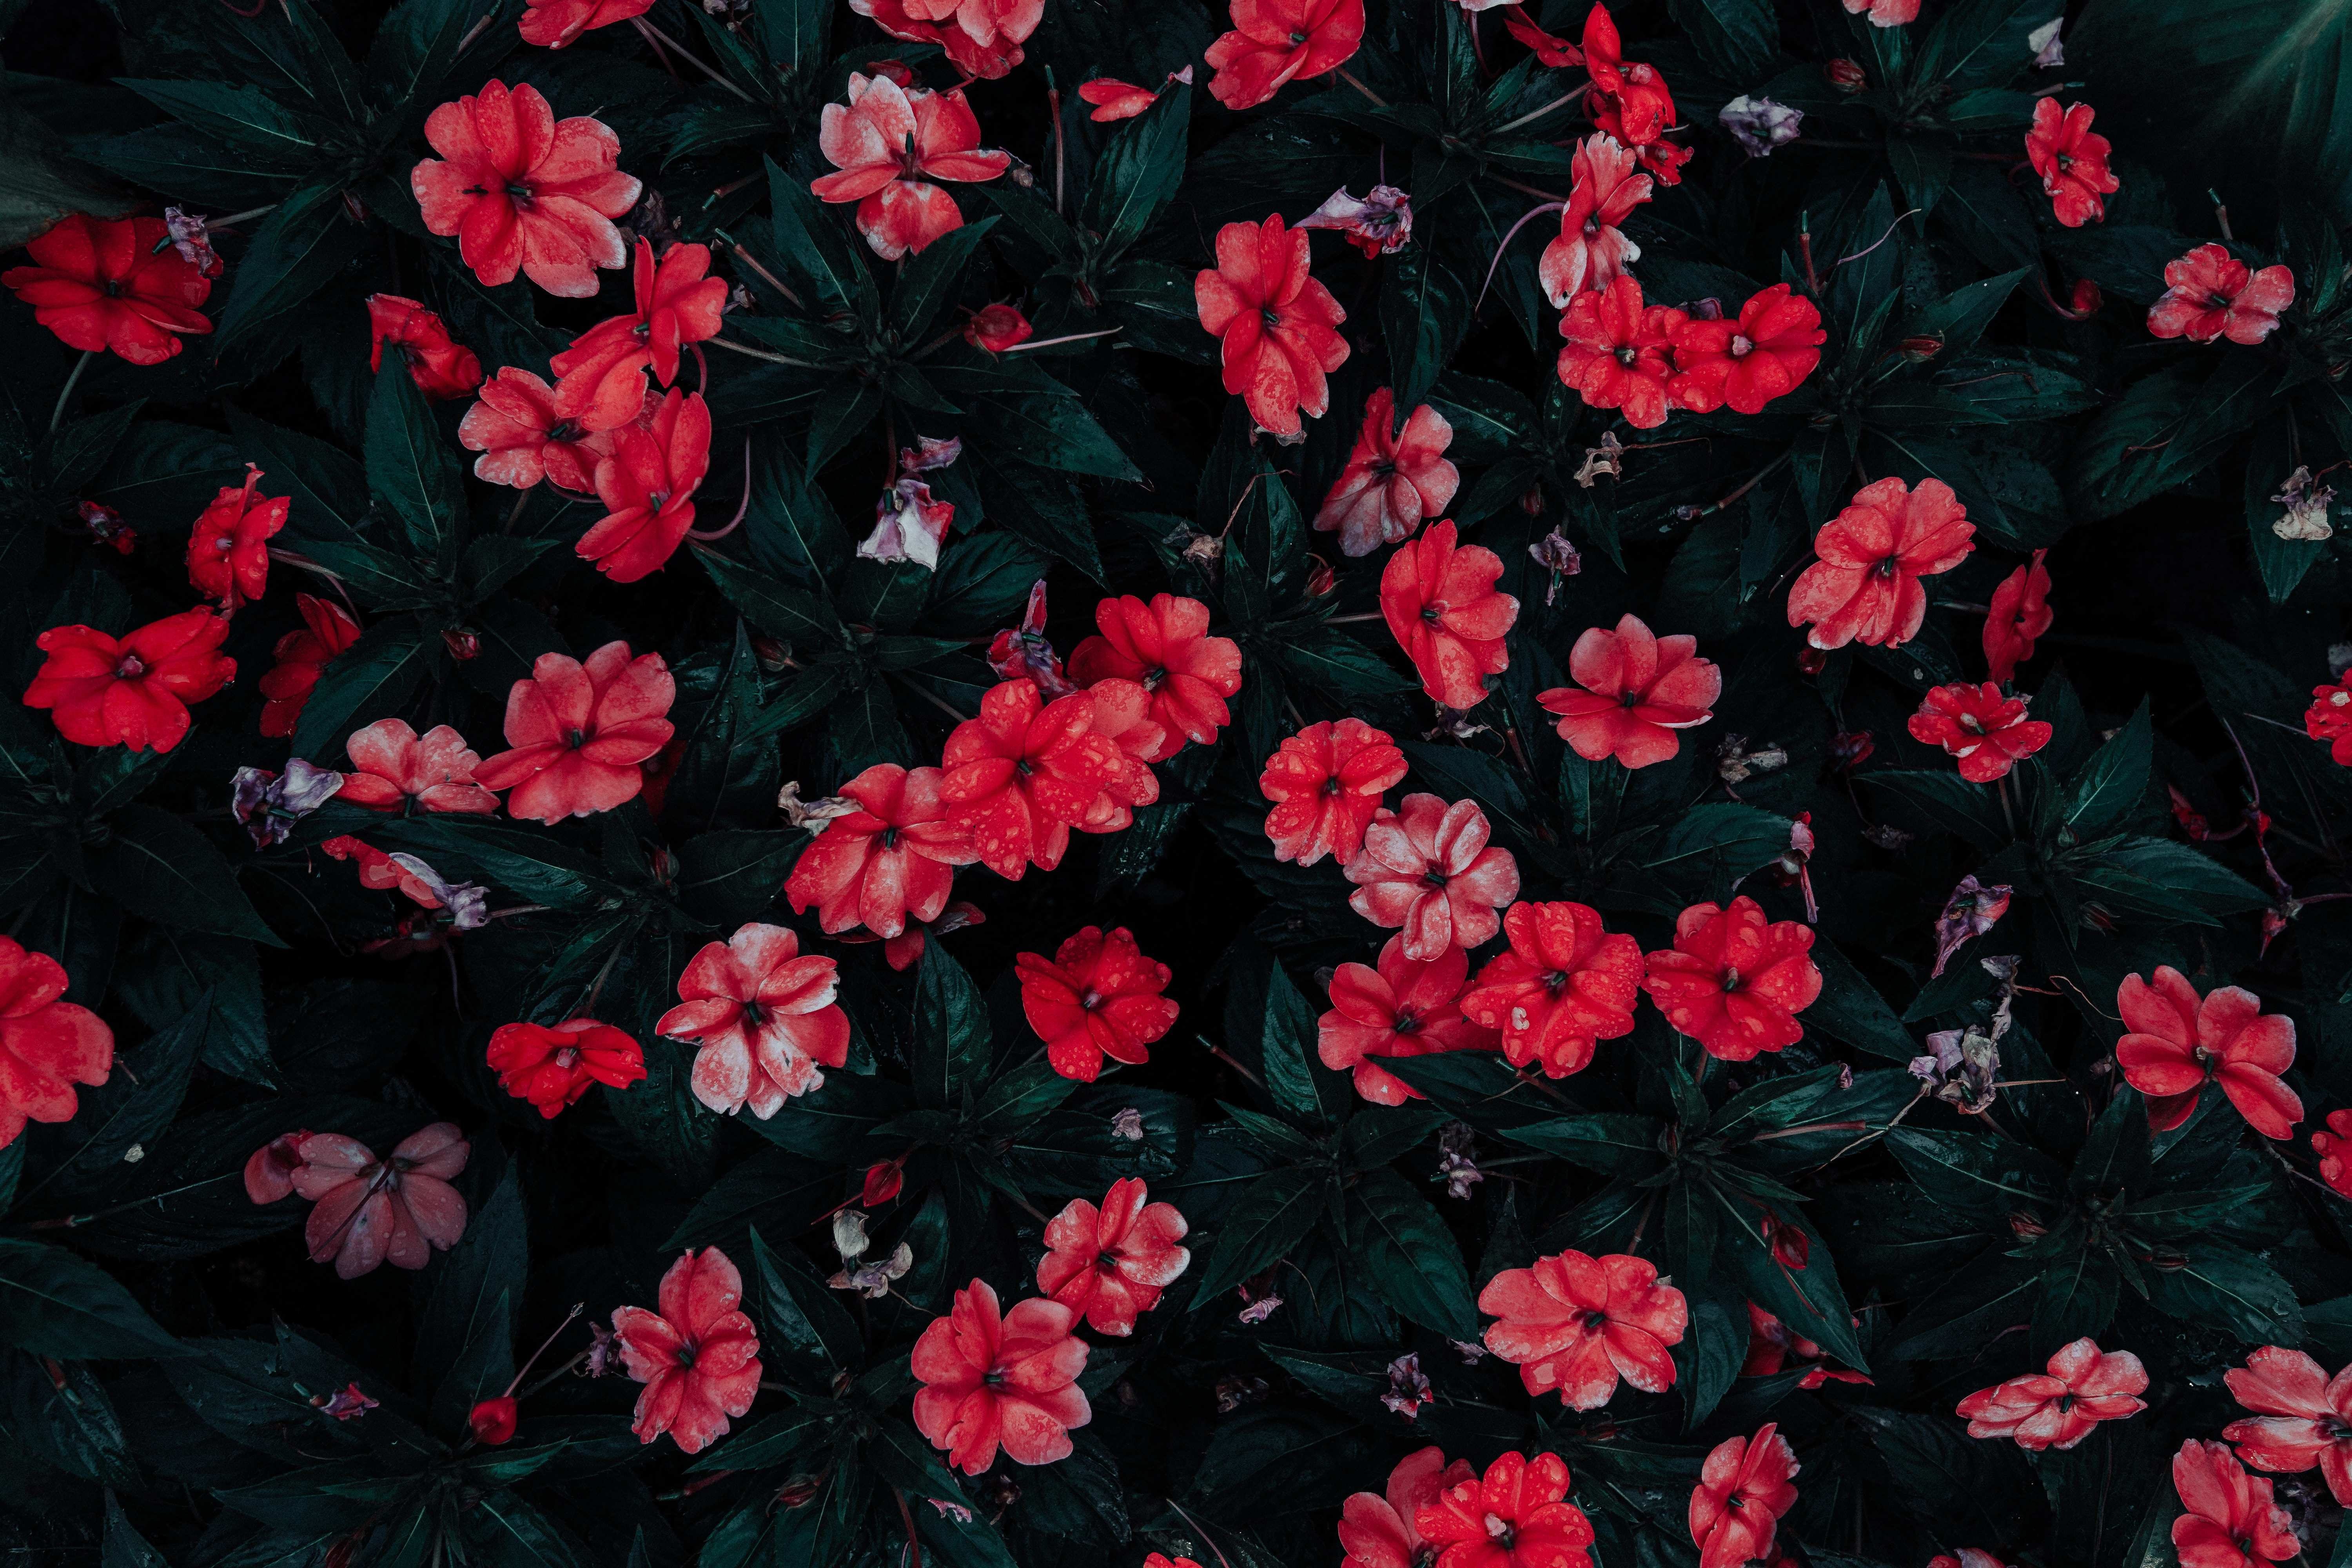 107863 Screensavers and Wallpapers Flower Bed for phone. Download Flowers, Drops, Bloom, Flowering, Flower Bed, Flowerbed pictures for free